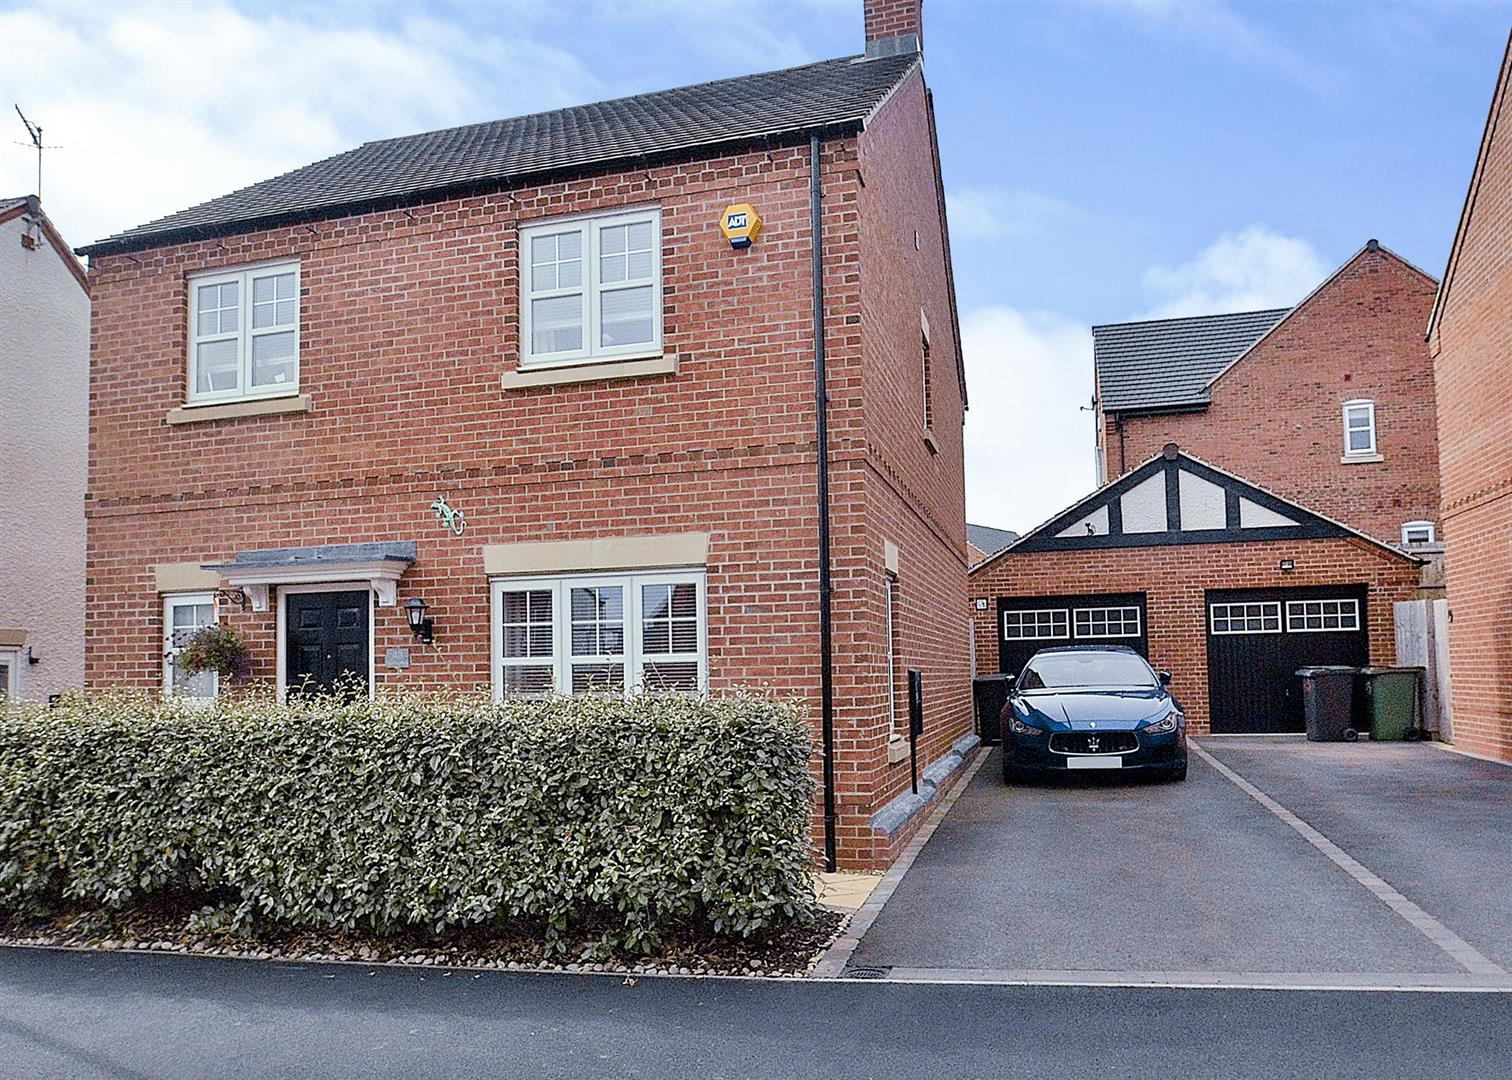 4 Bedrooms Detached House for sale in Spitfire Road, Castle Donington, Derby